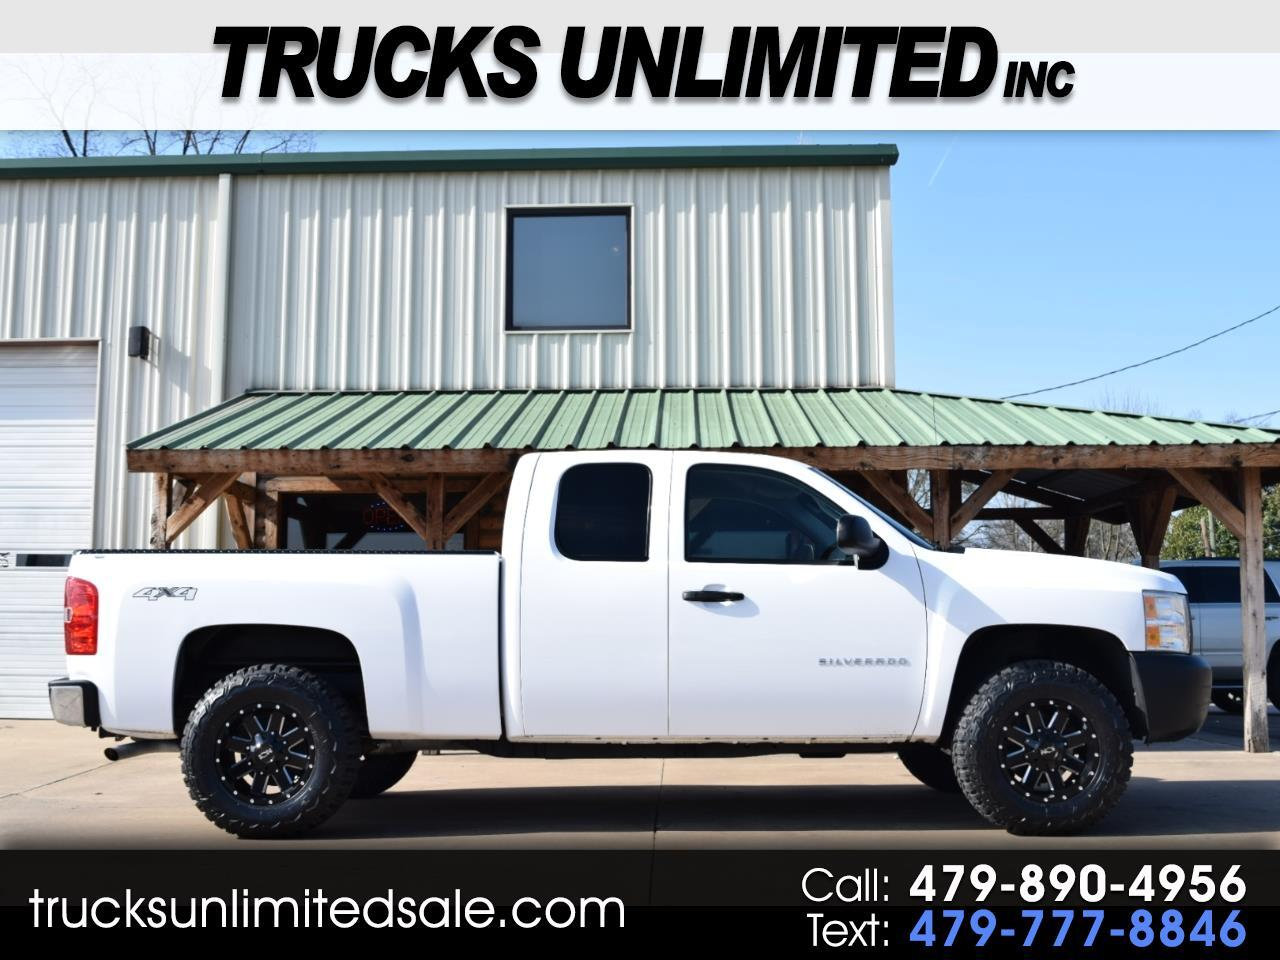 Used Trucks For Sale In Arkansas >> Used Cars For Sale Russellville Ar 72801 Trucks Unlimited